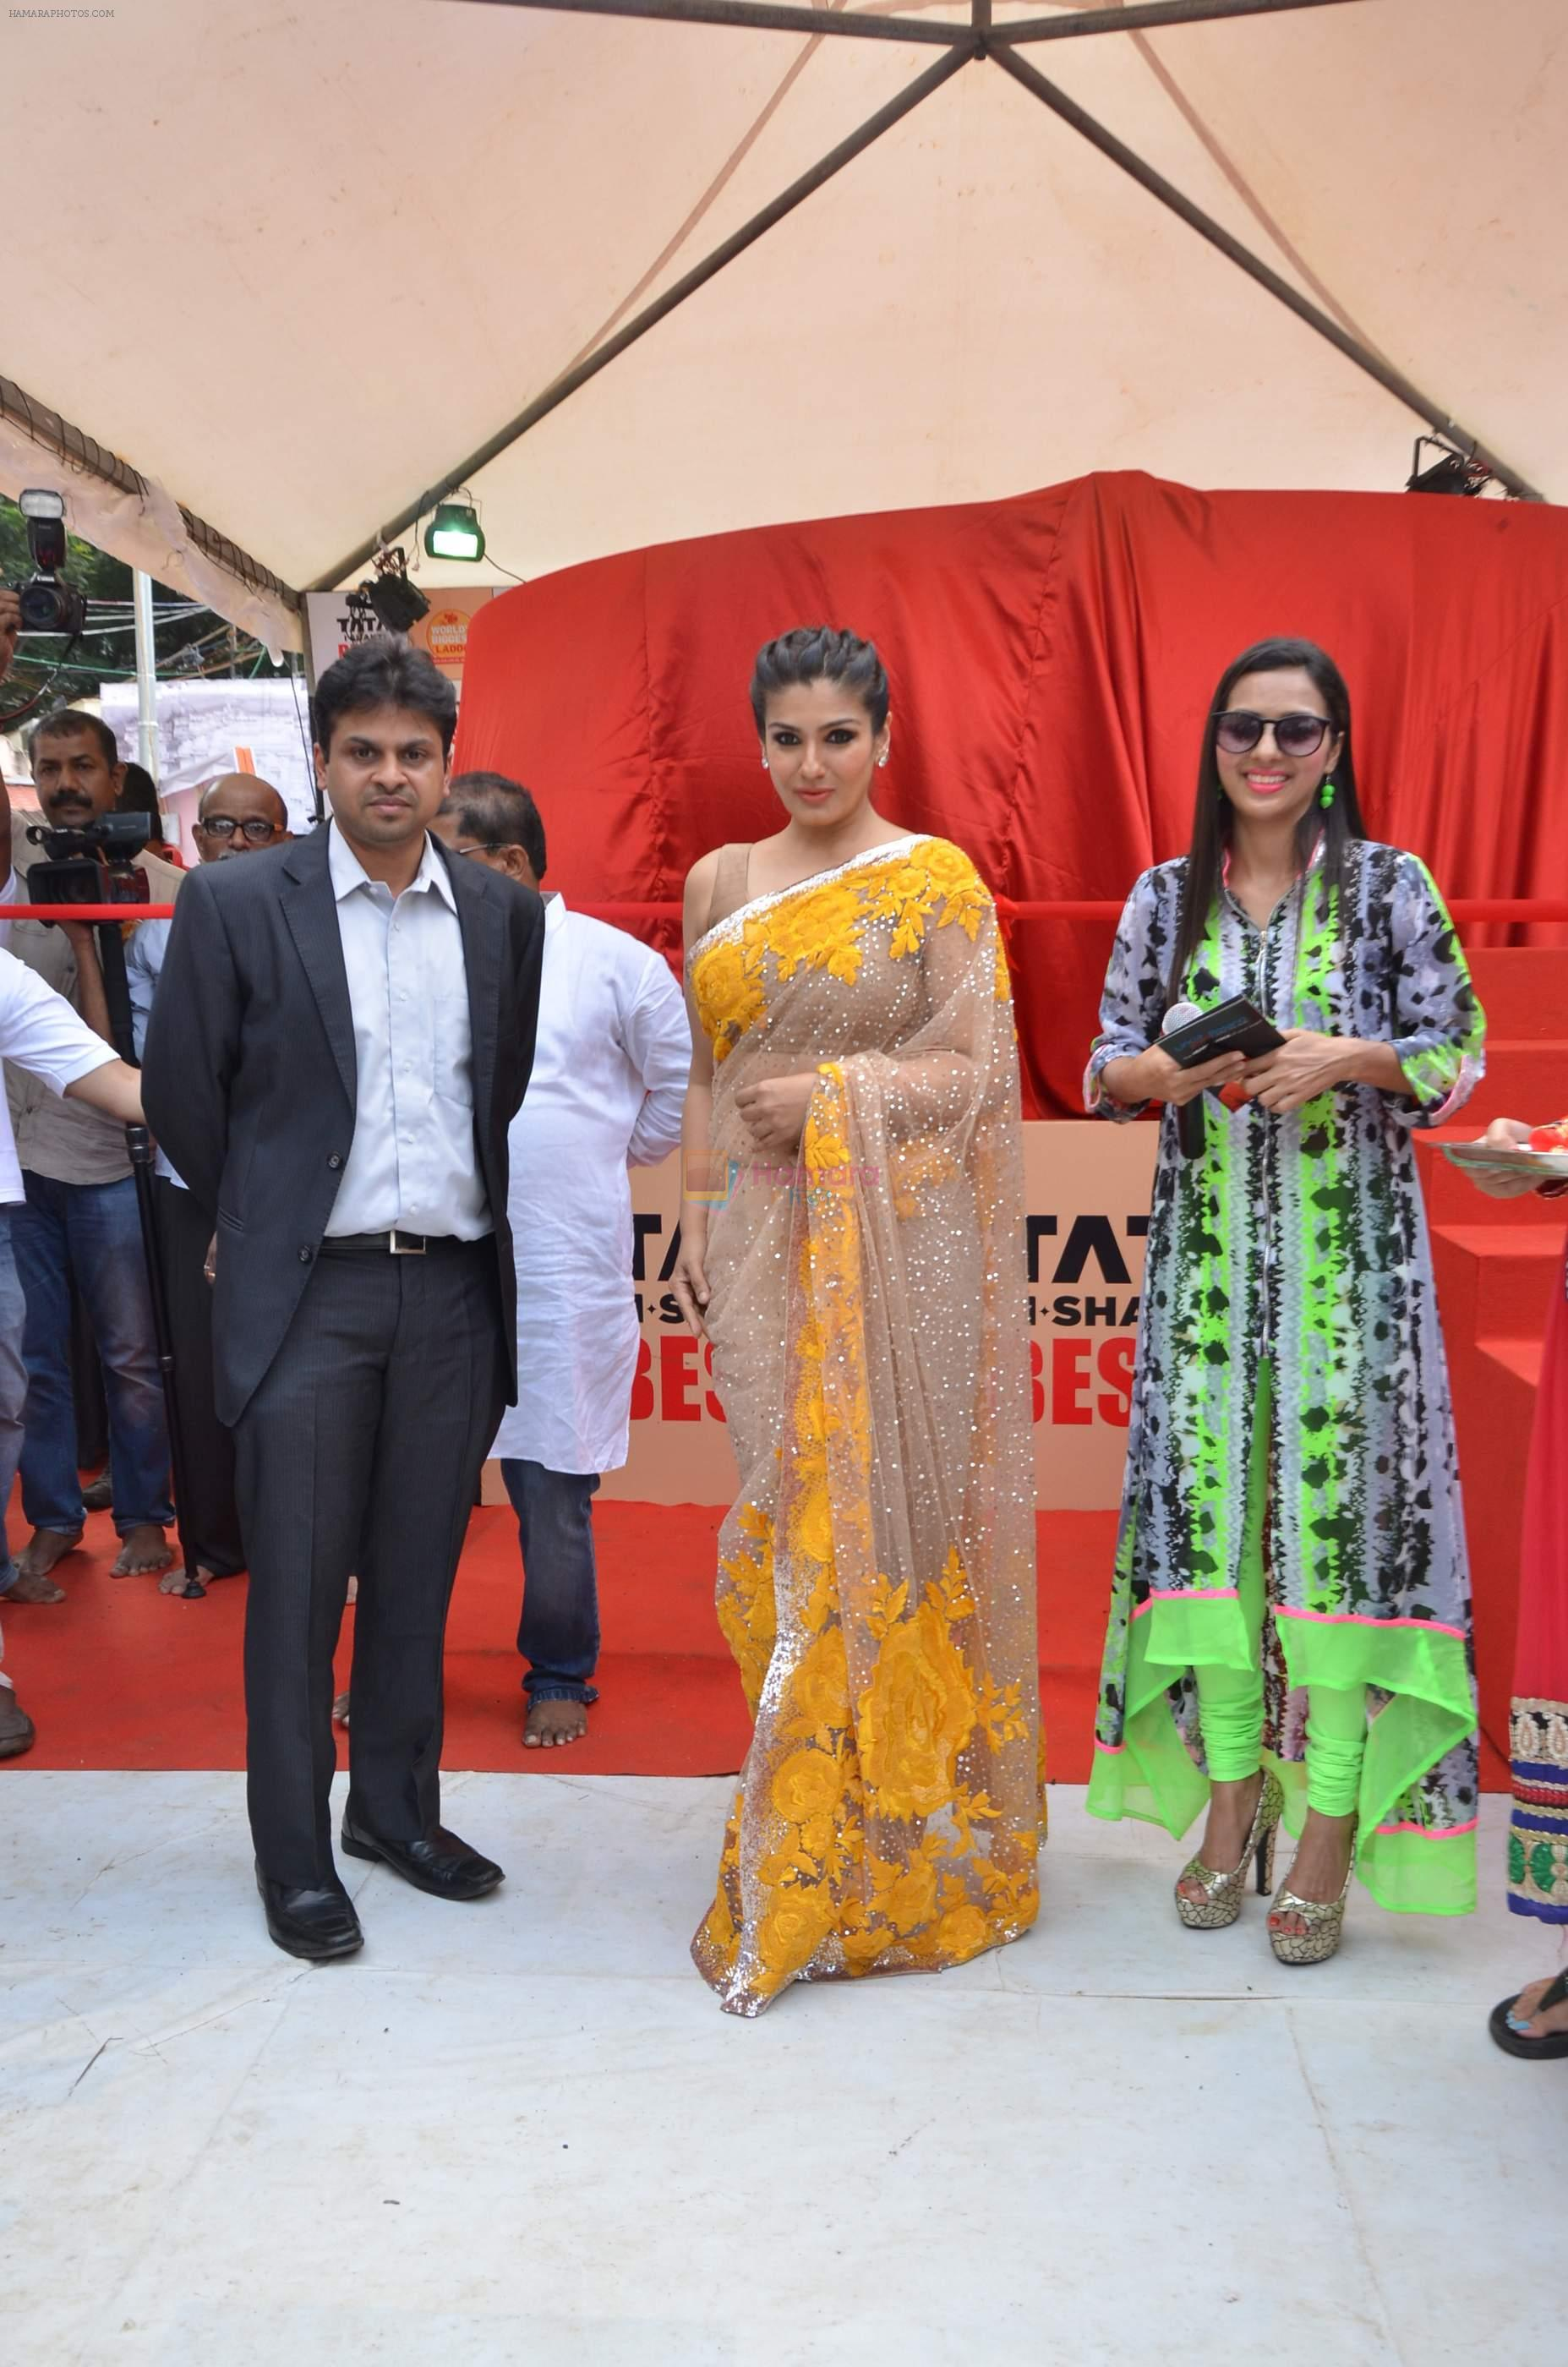 Raveena Tandon at Tata I-Shakti Besan offered the World's Biggest Besan Ladoo to Andhericha Raja on 22nd Sept 2015